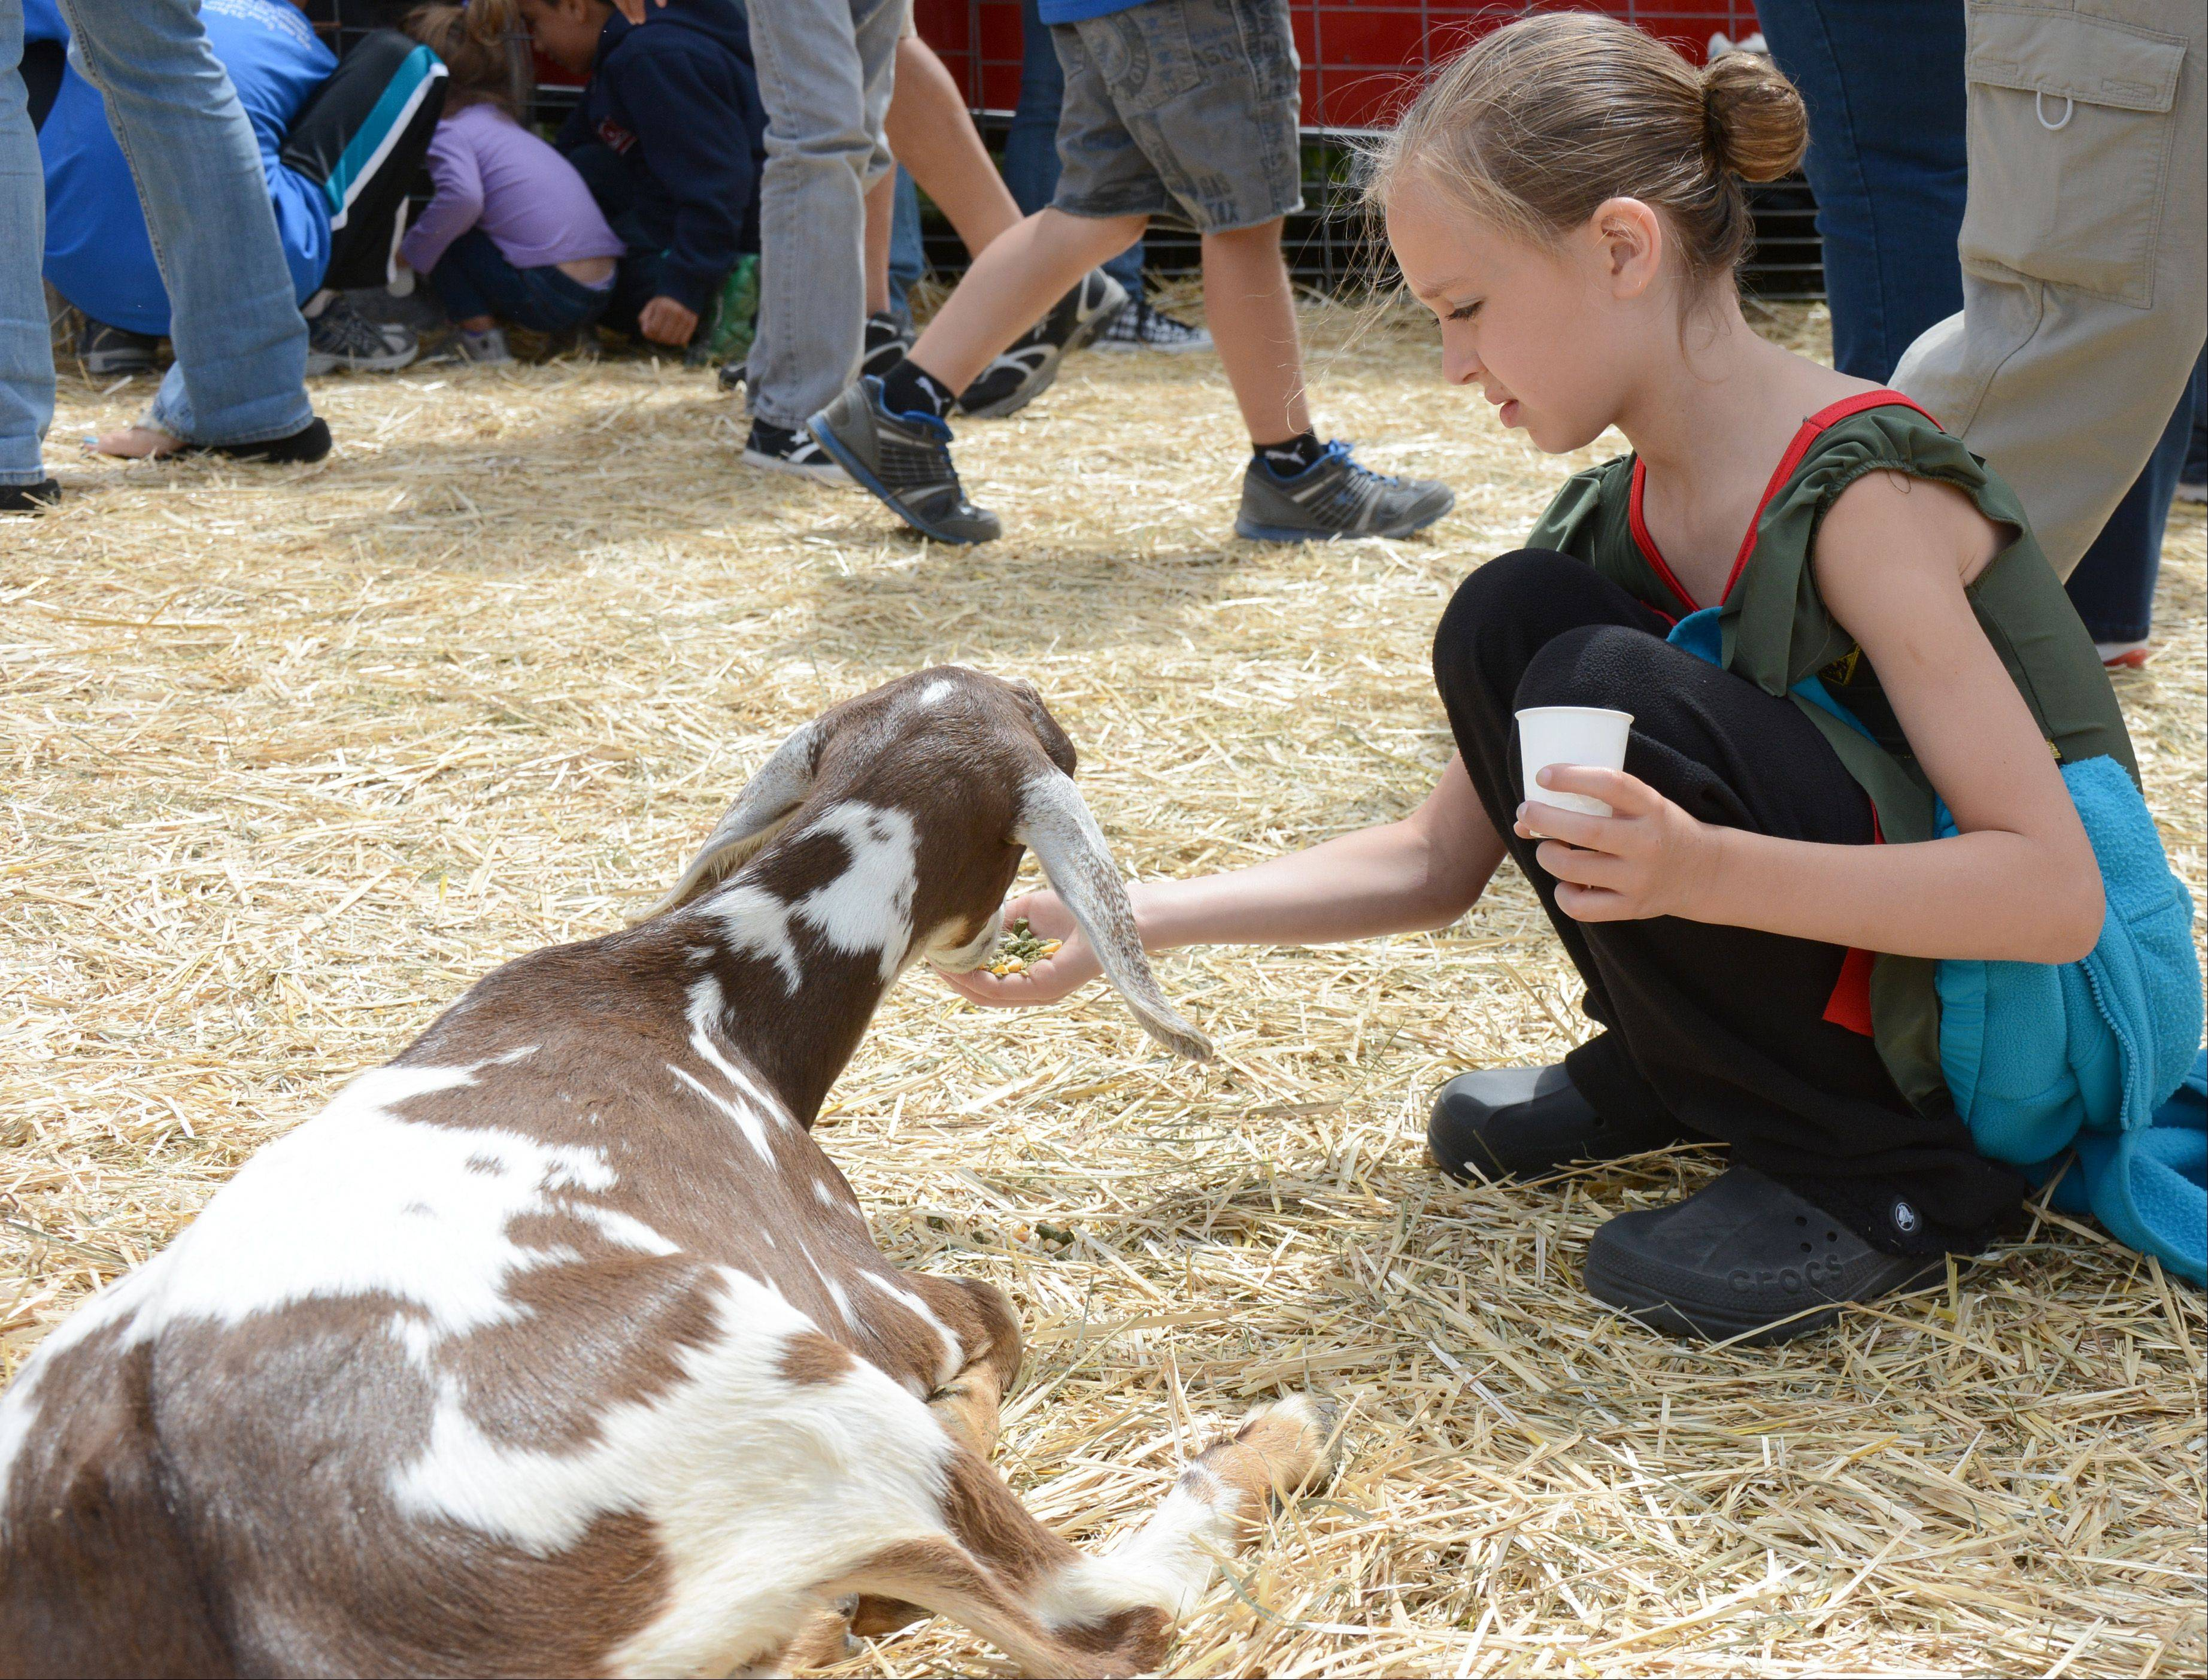 Zoe Easterberg, 8, of Lindenhurst, feeds a goat at the Lake County Fair Sunday, July 28.